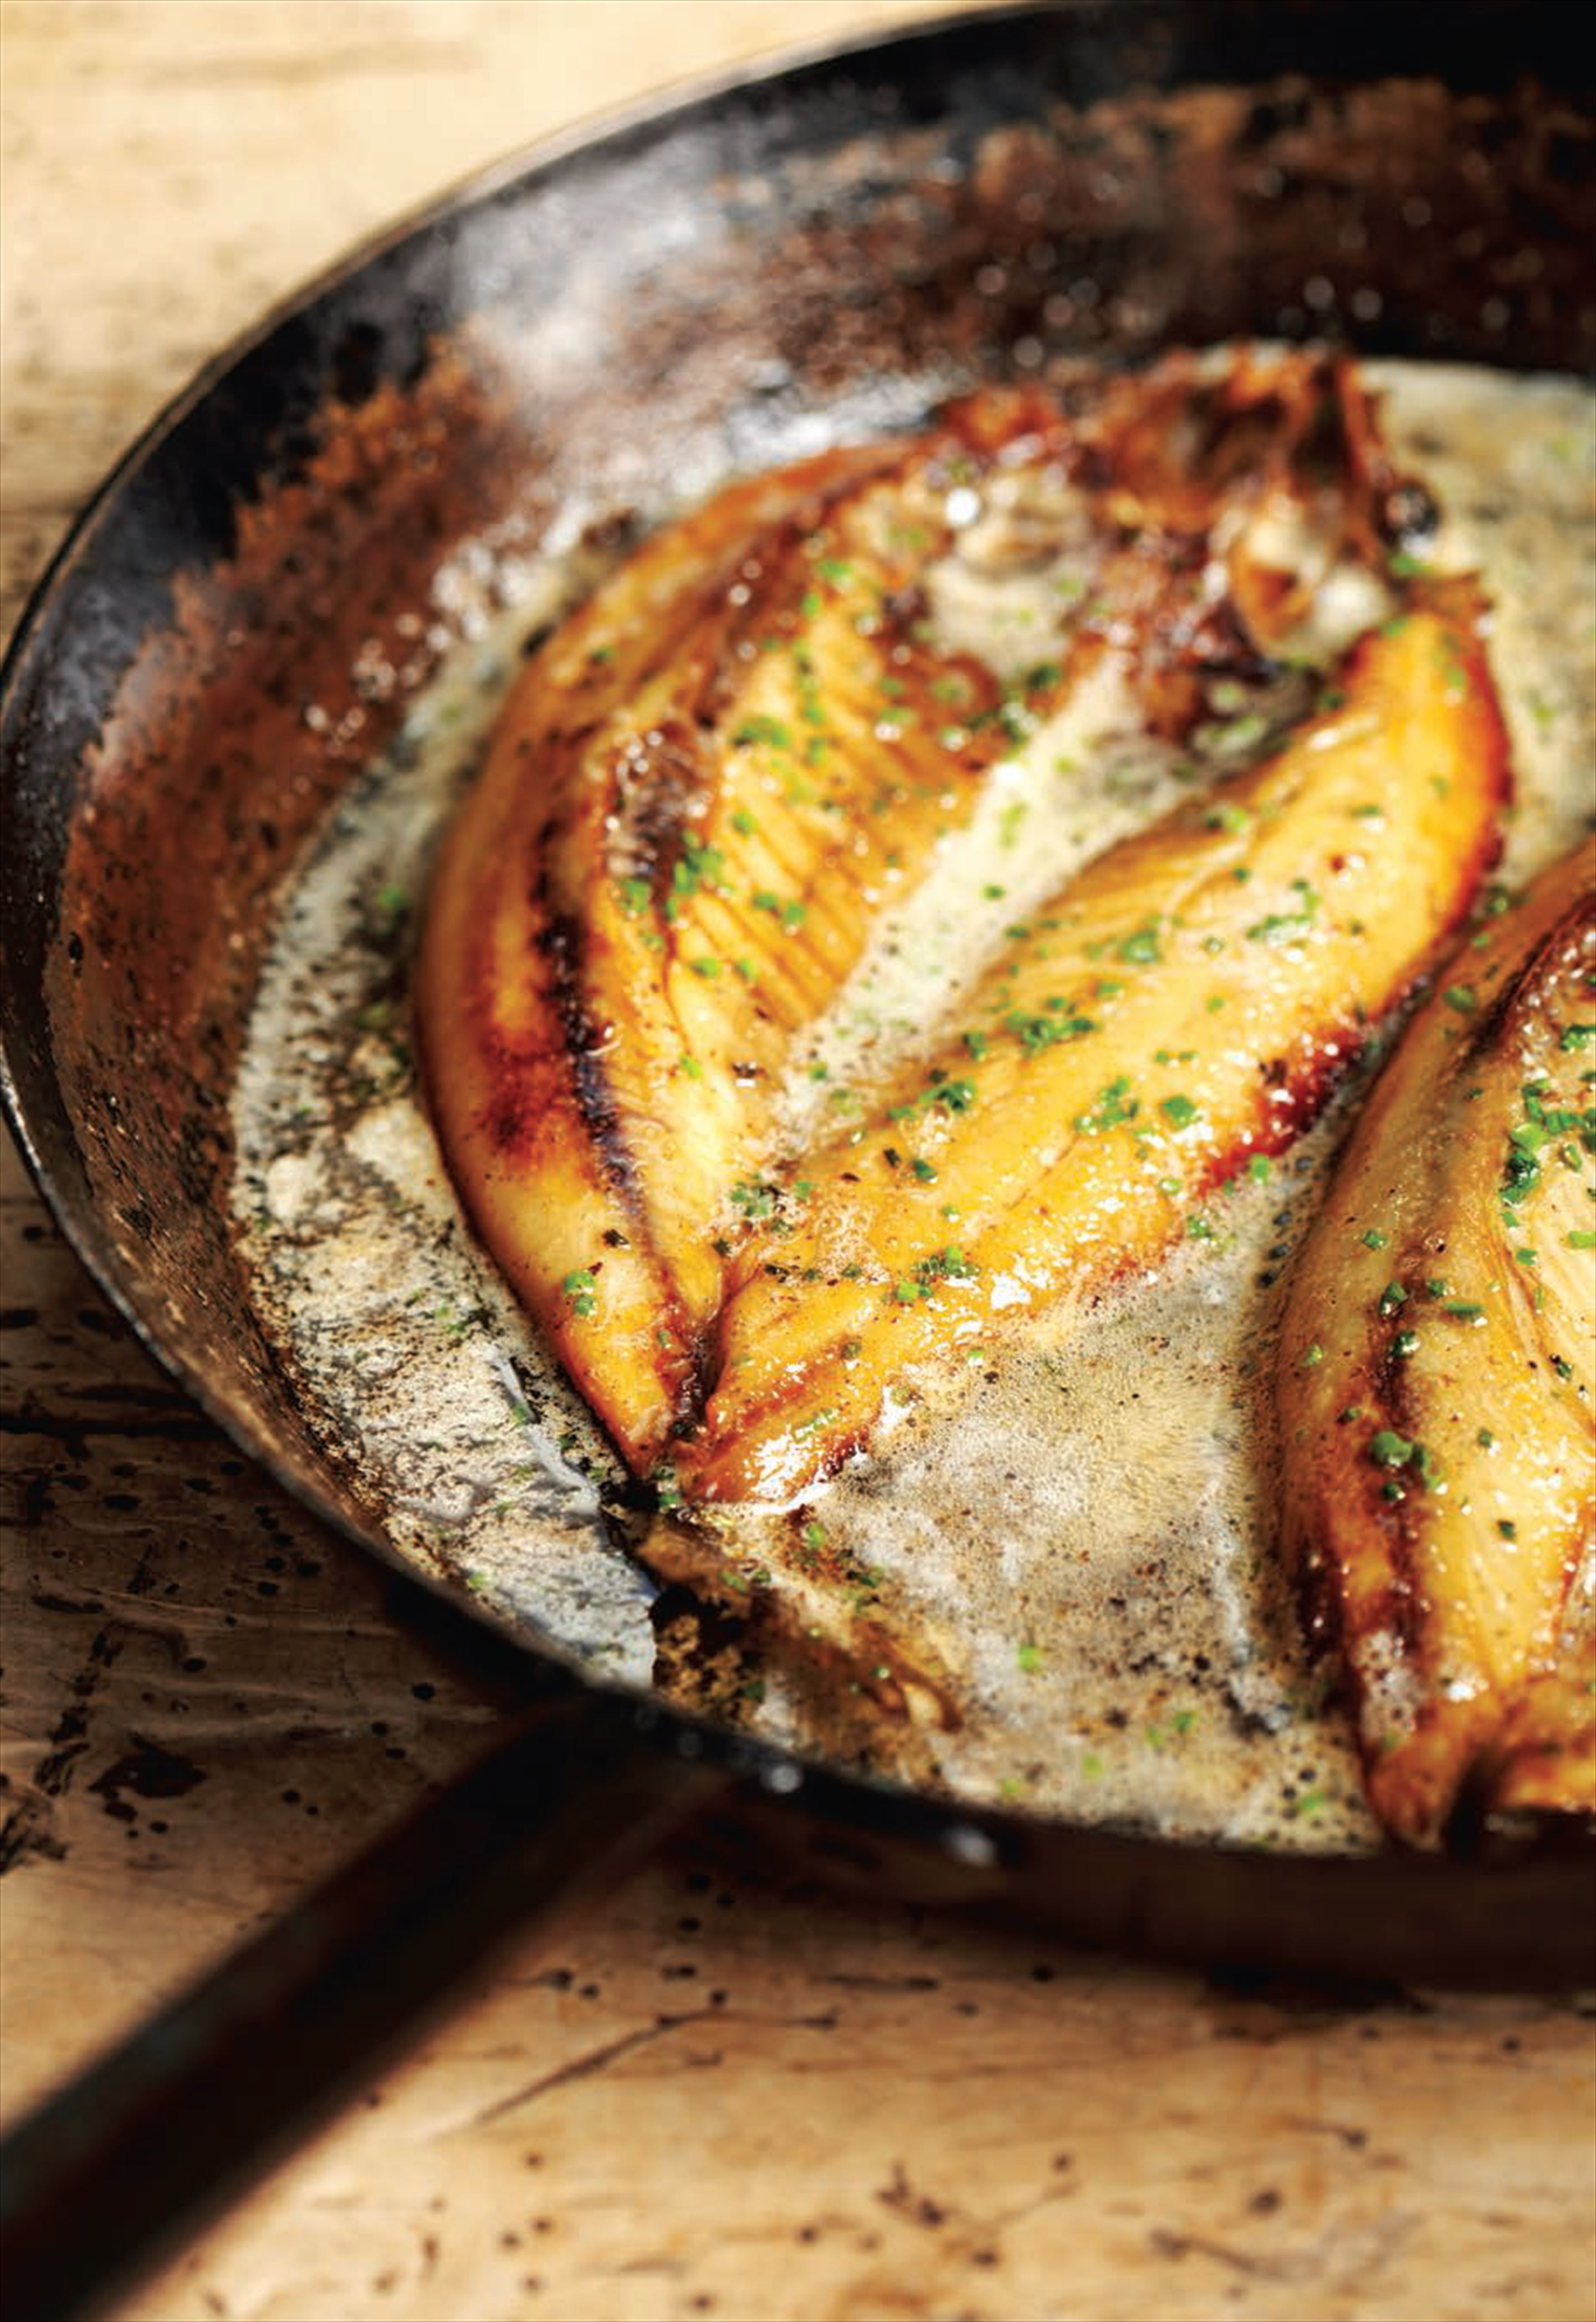 Grilled kippers with lemon butter